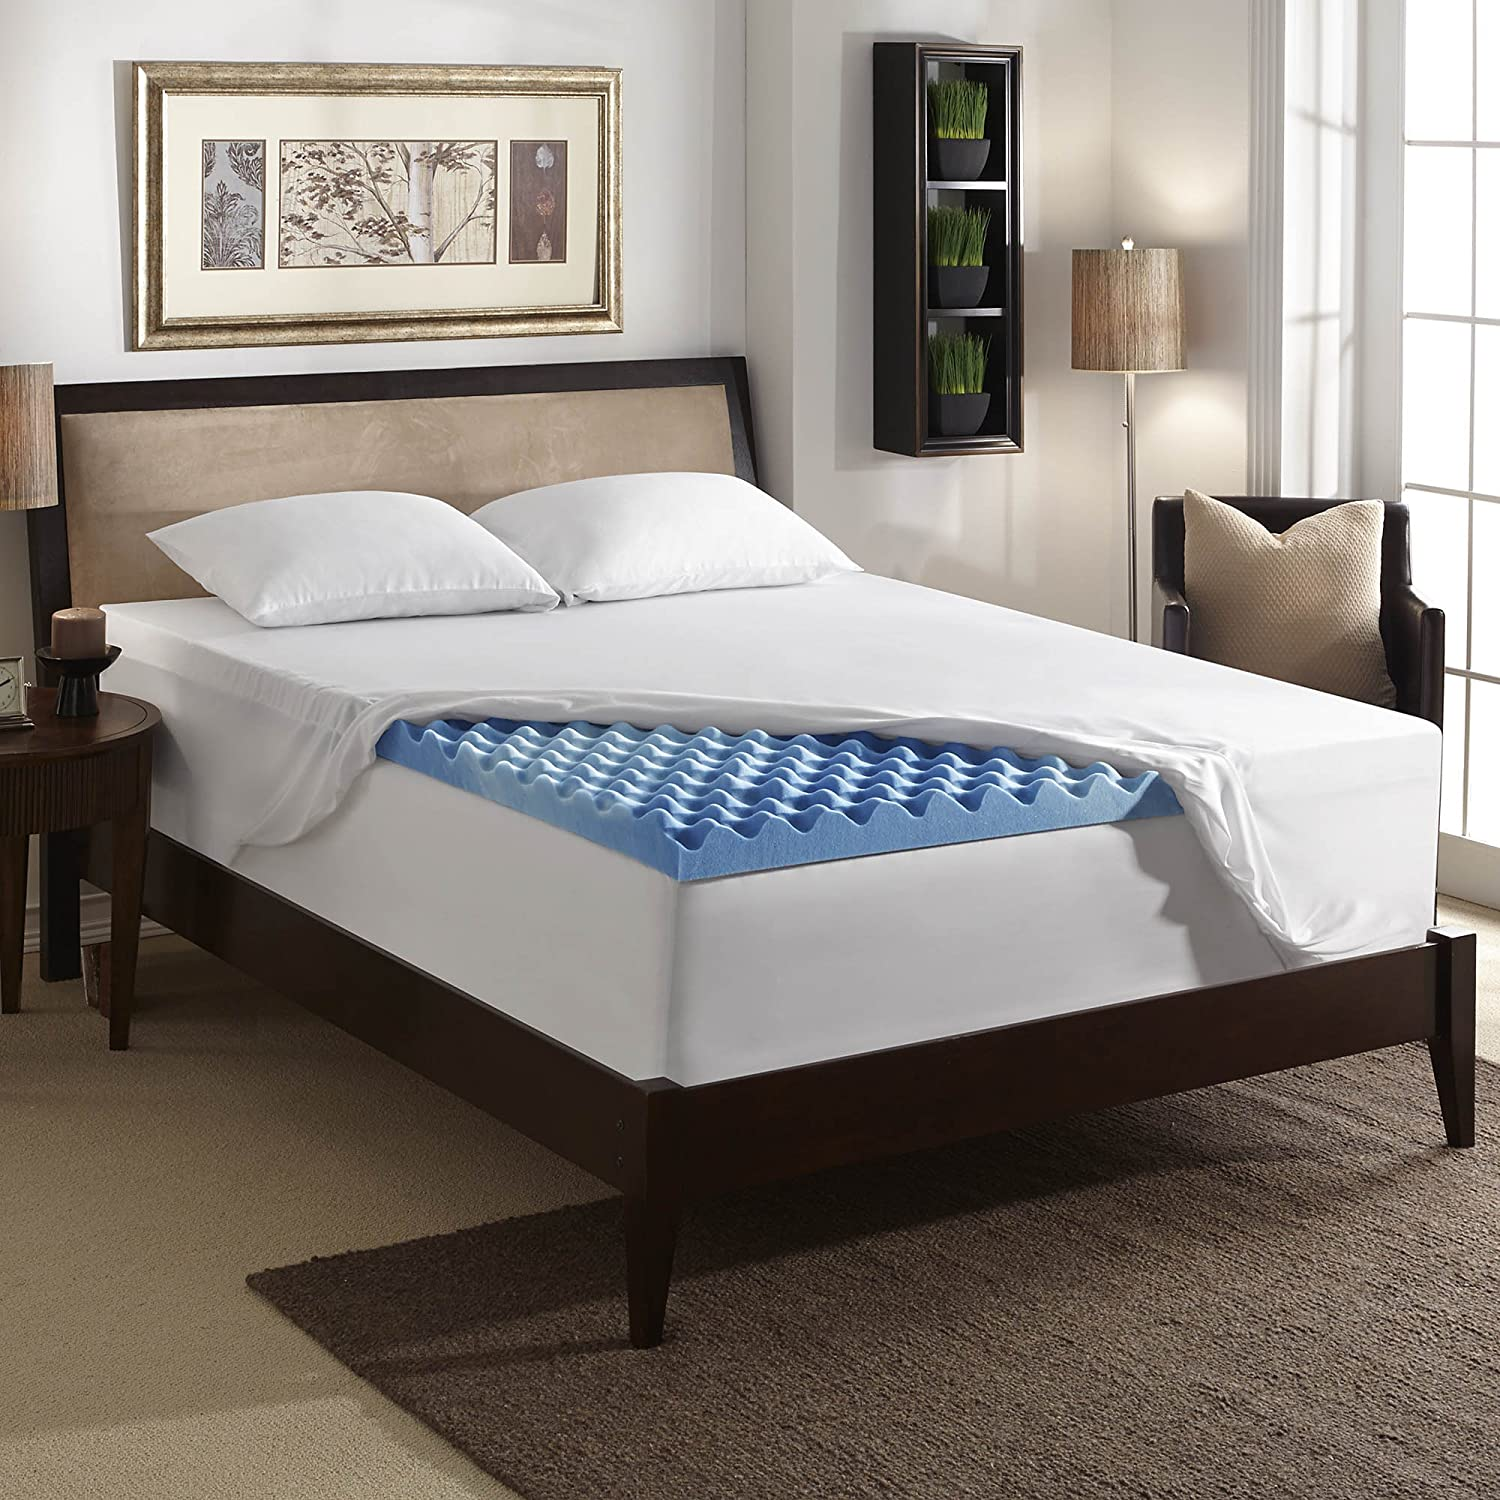 tempur bed dogs for pain pedic beds mattresses posturepedic pads sealy best back full mattress memory foam topper of size